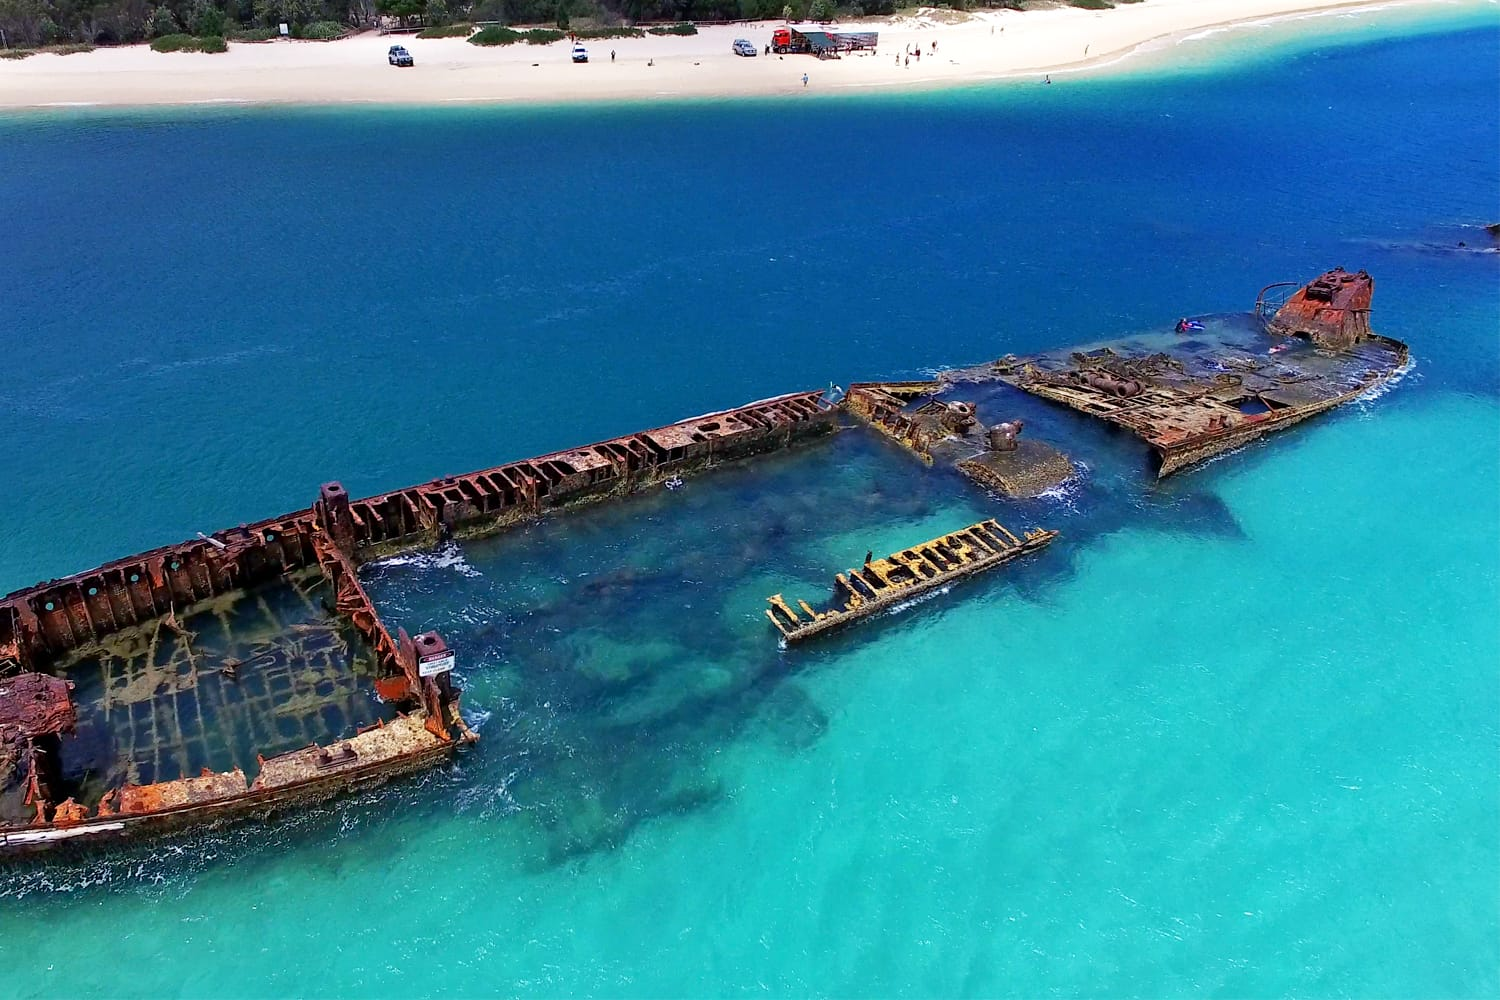 Aerial view of Tangalooma Island shipwrecks and national park in Moreton Bay region, Queensland Australia